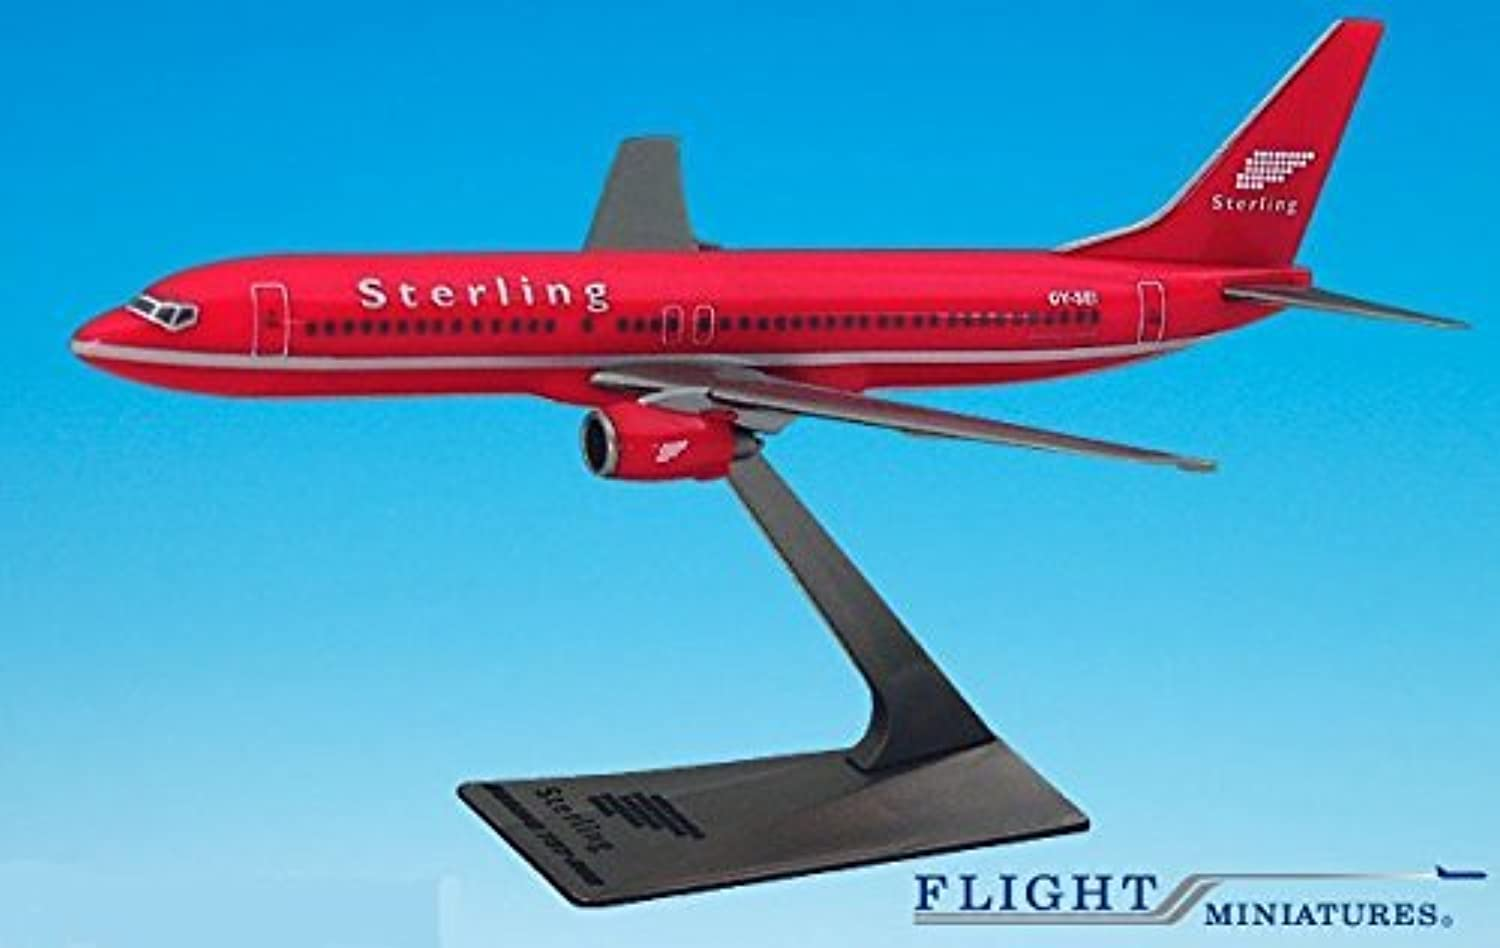 Sterling Red 737800 Airplane Miniature Model Plastic SnapFit 1 200 Part  ABO73780H018